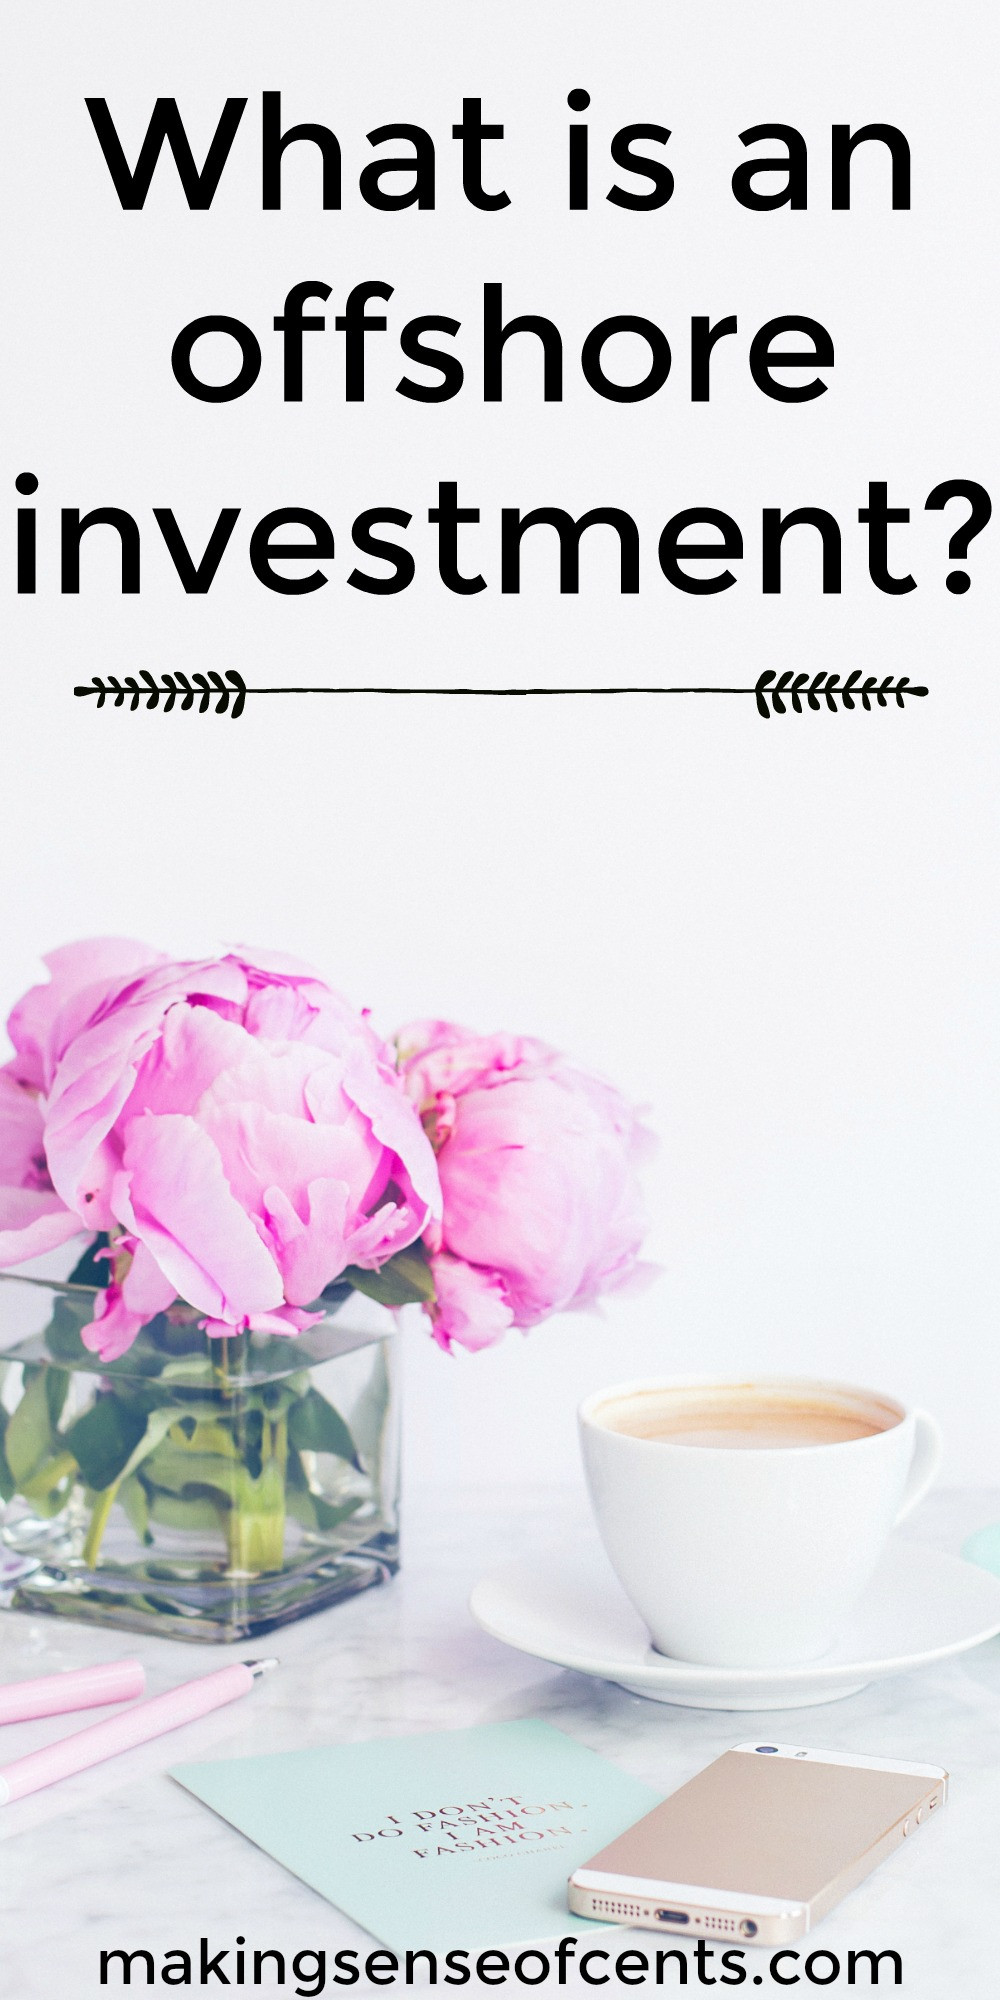 What is an offshore investment?